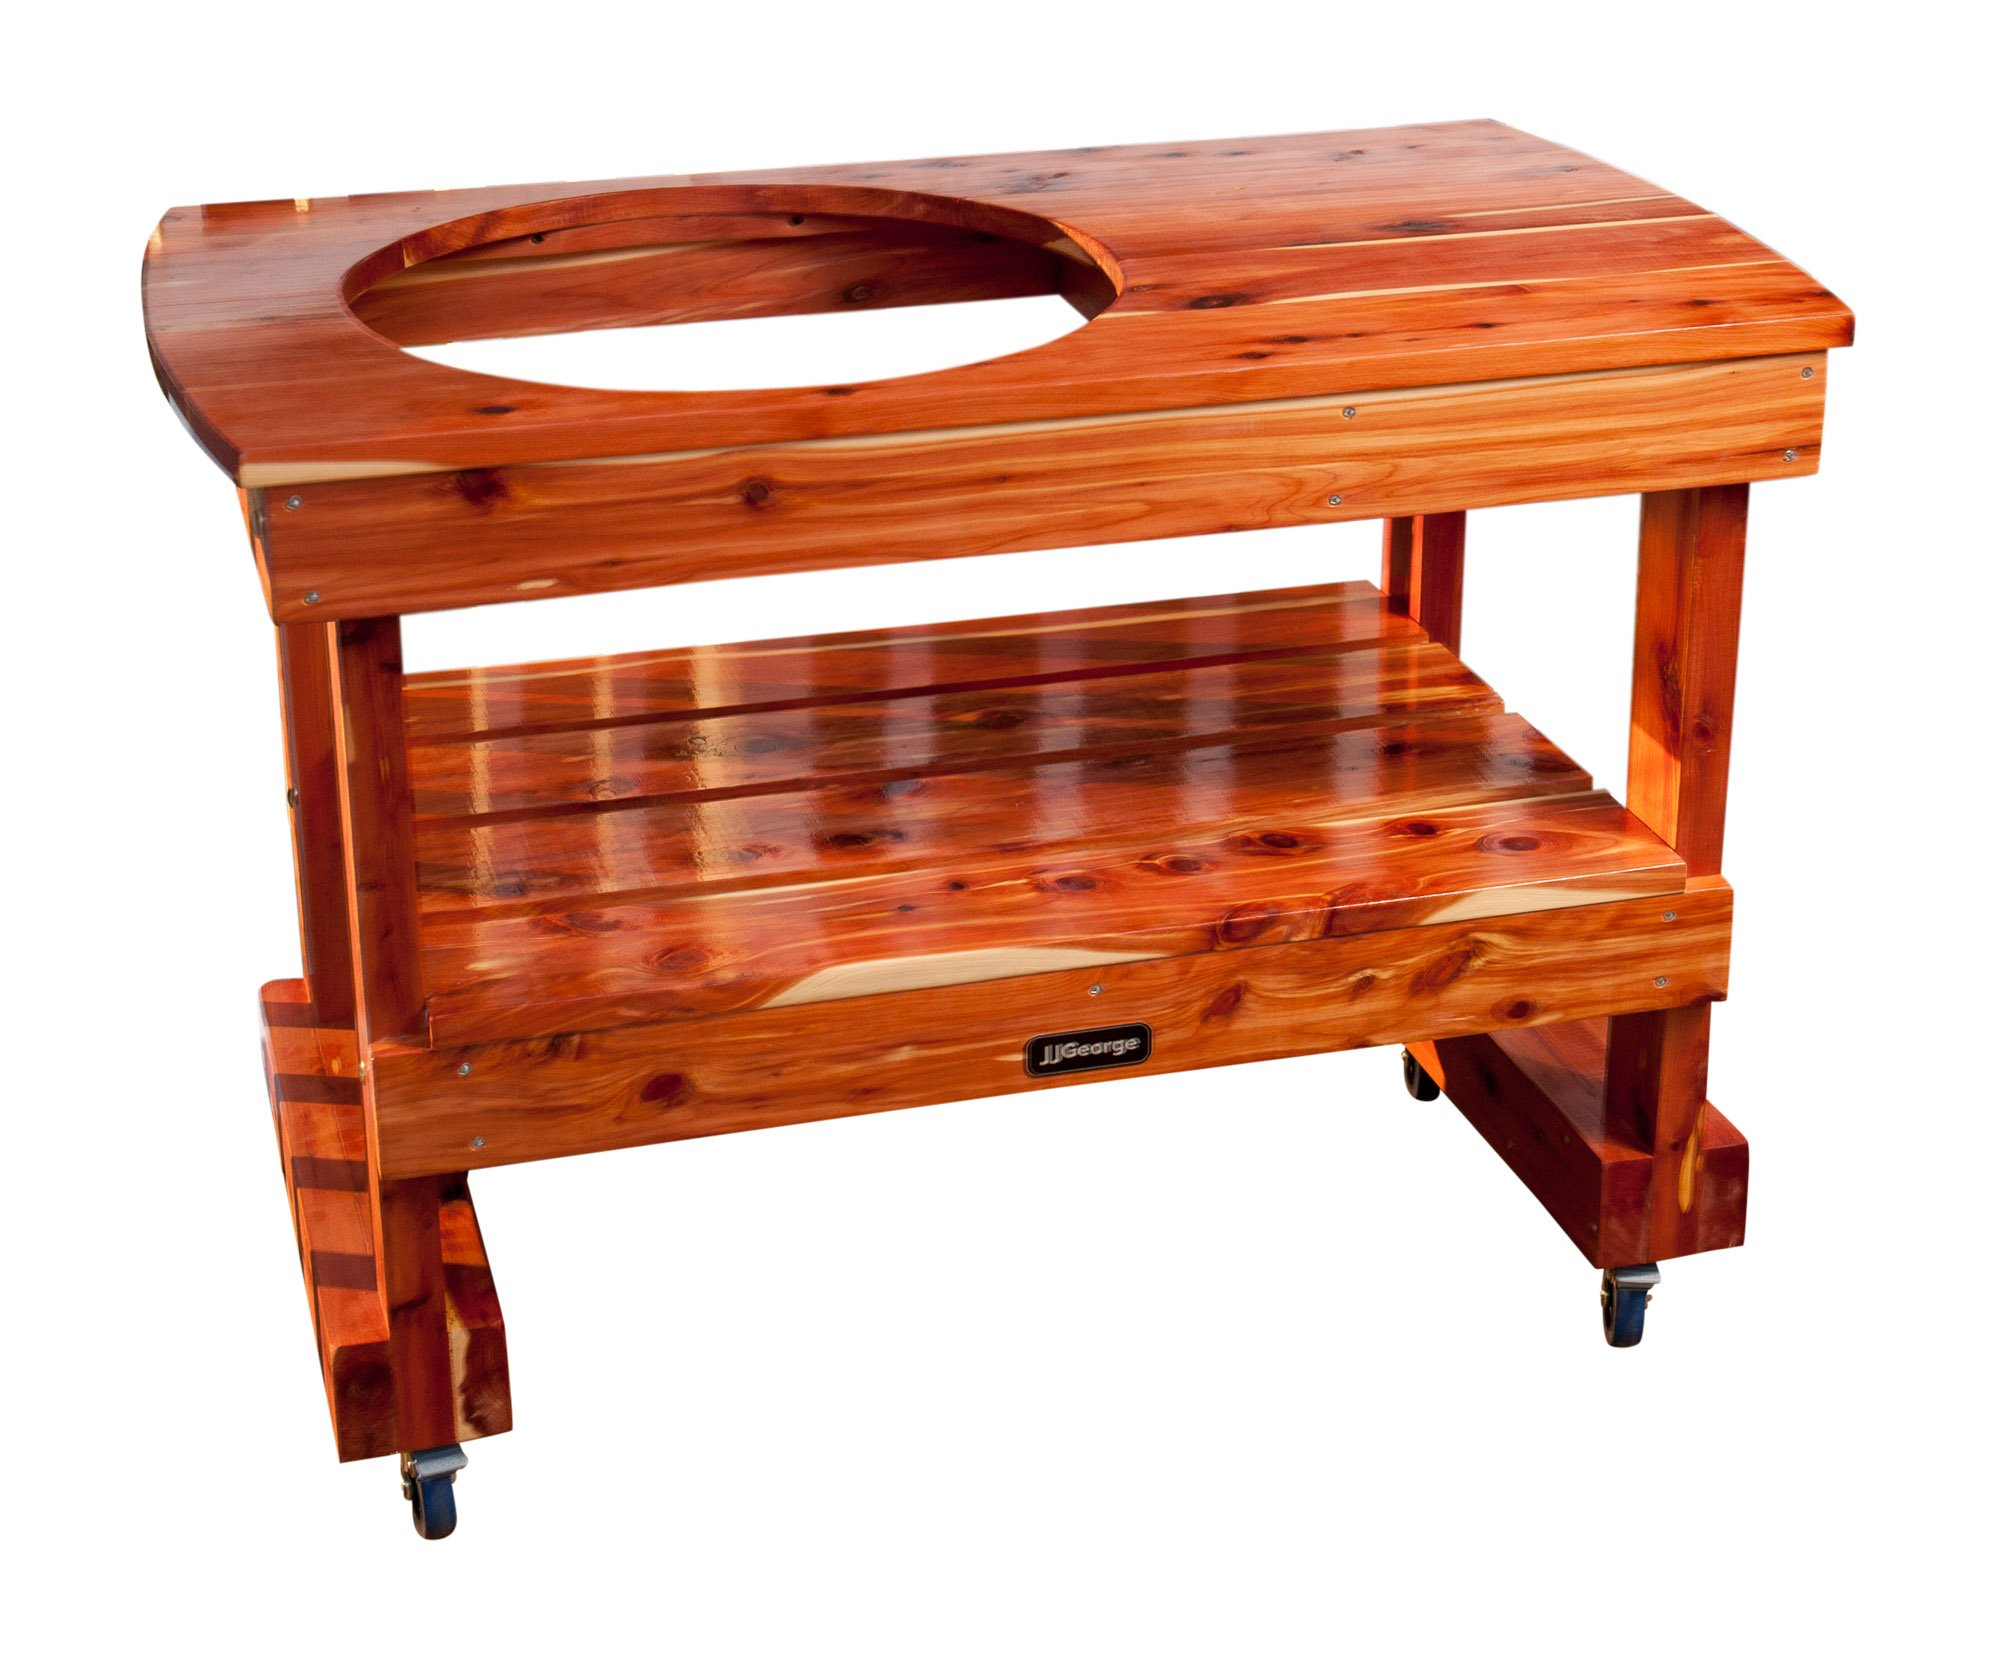 JJGeorge Big Green Egg Table (Compact Table for Large Green Egg) Table Cover Included by JJGeorge